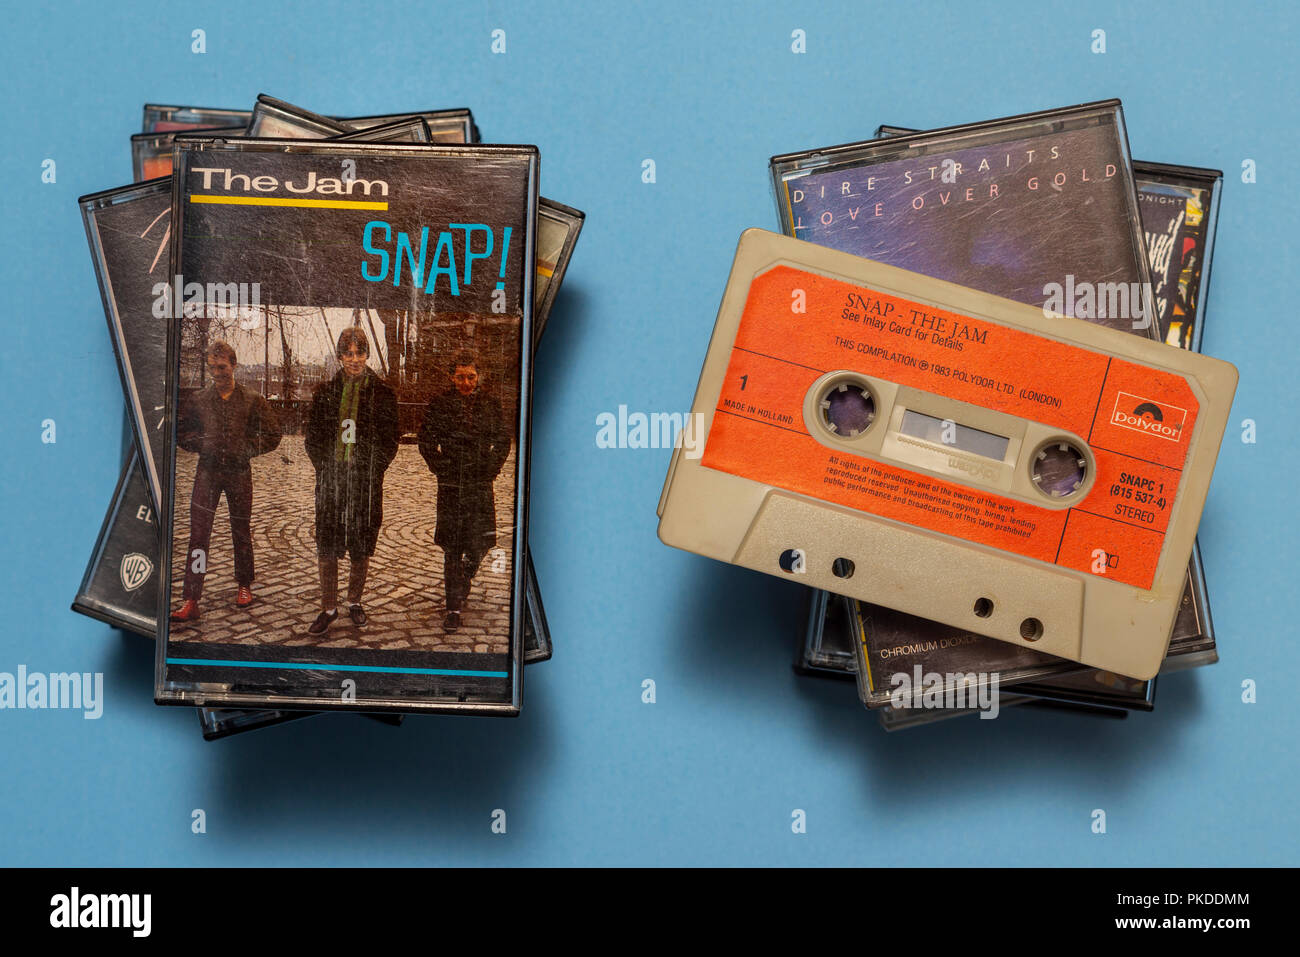 compact audio cassette of The Jam, Snap album with art work. - Stock Image